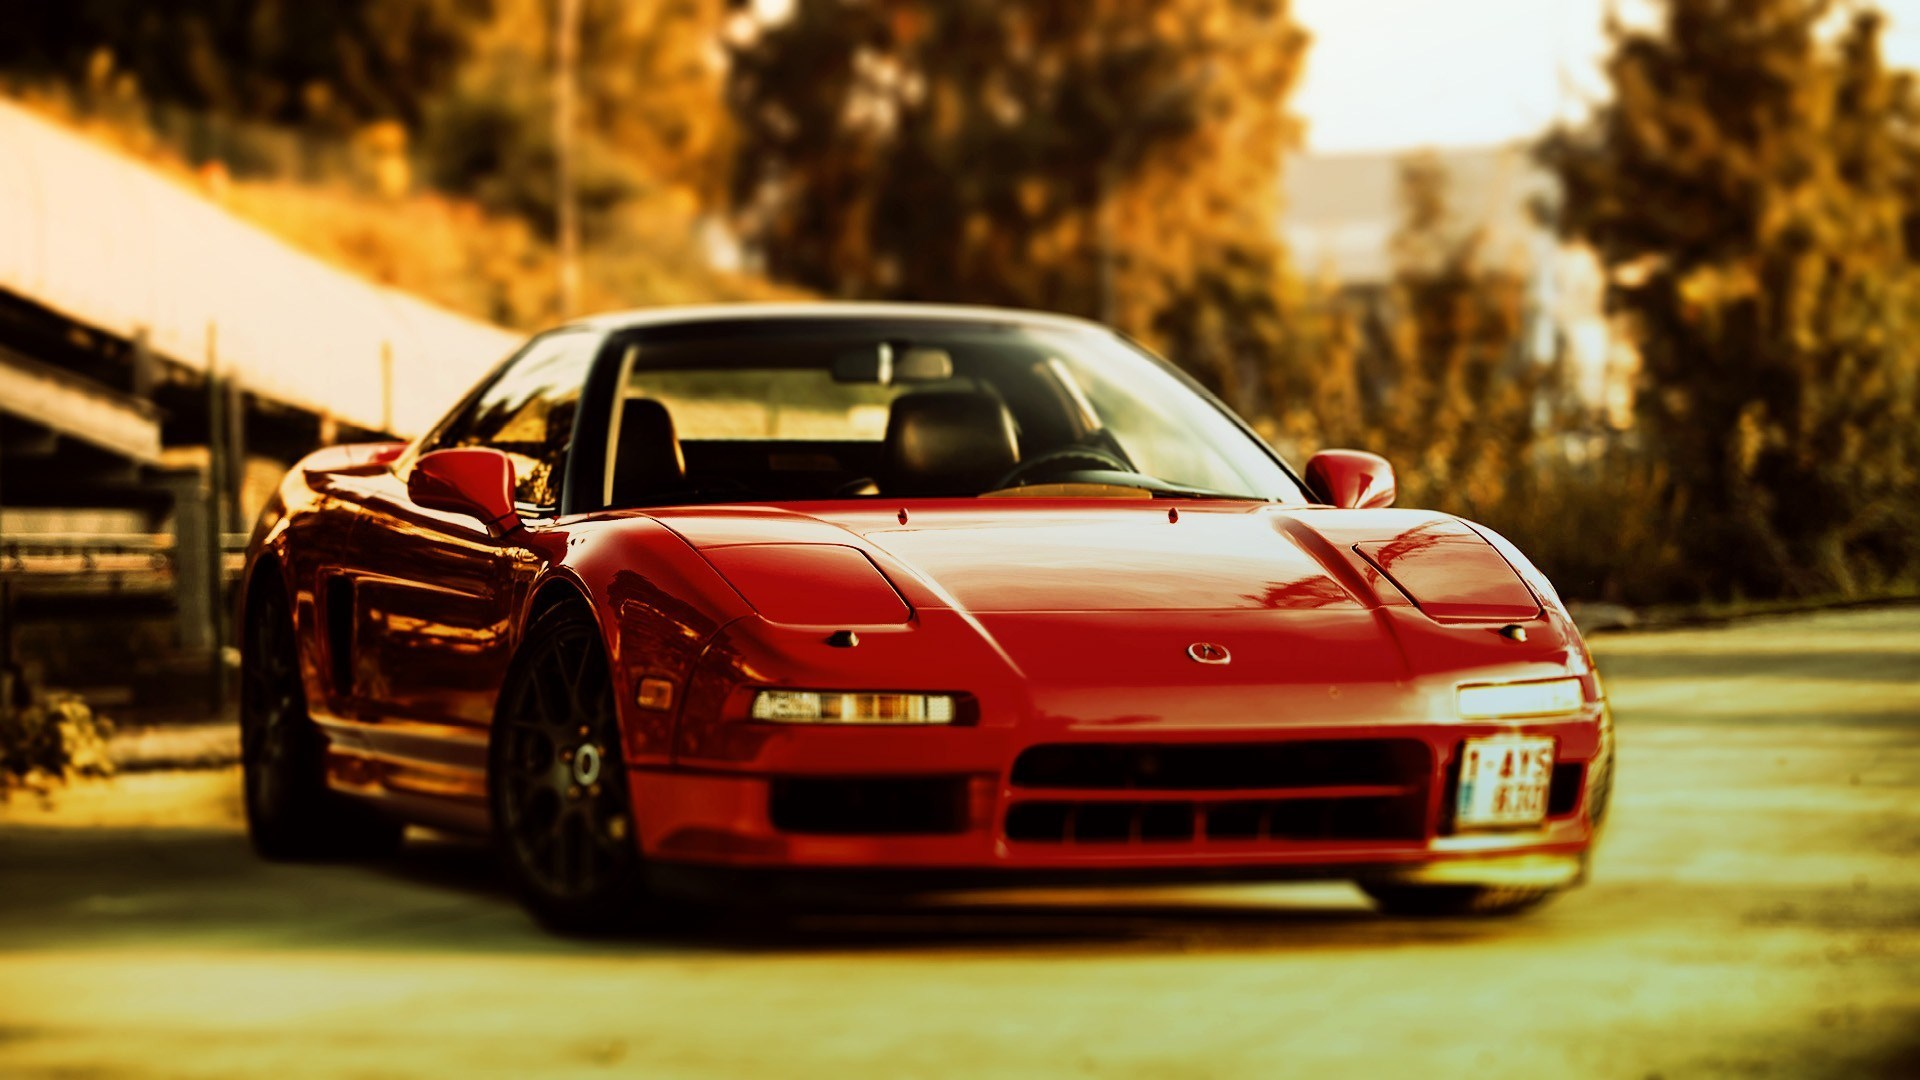 Honda NSX Wallpapers High Resolution and Quality ...